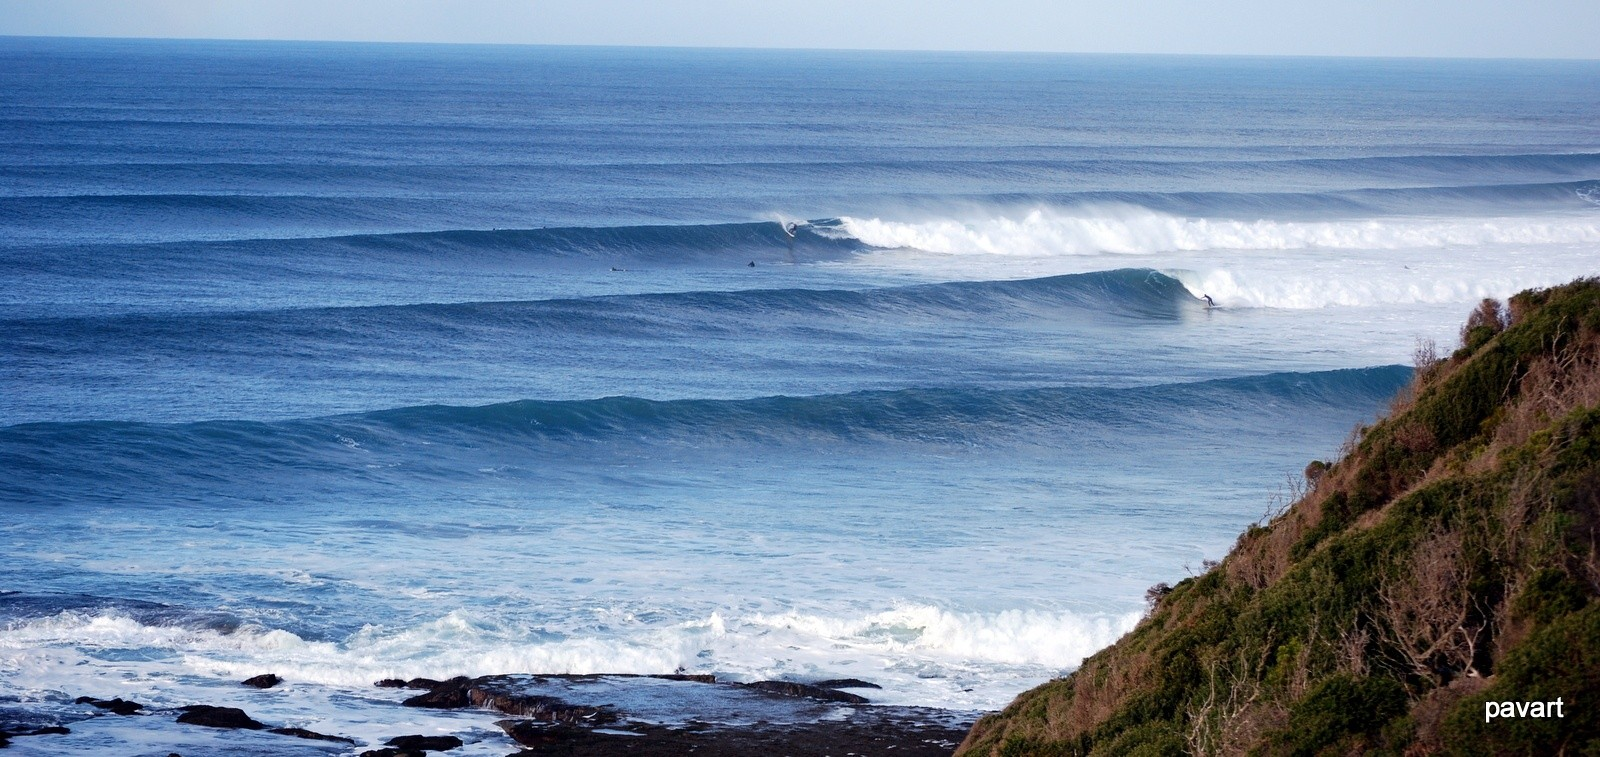 pavart's photo of Bells Beach